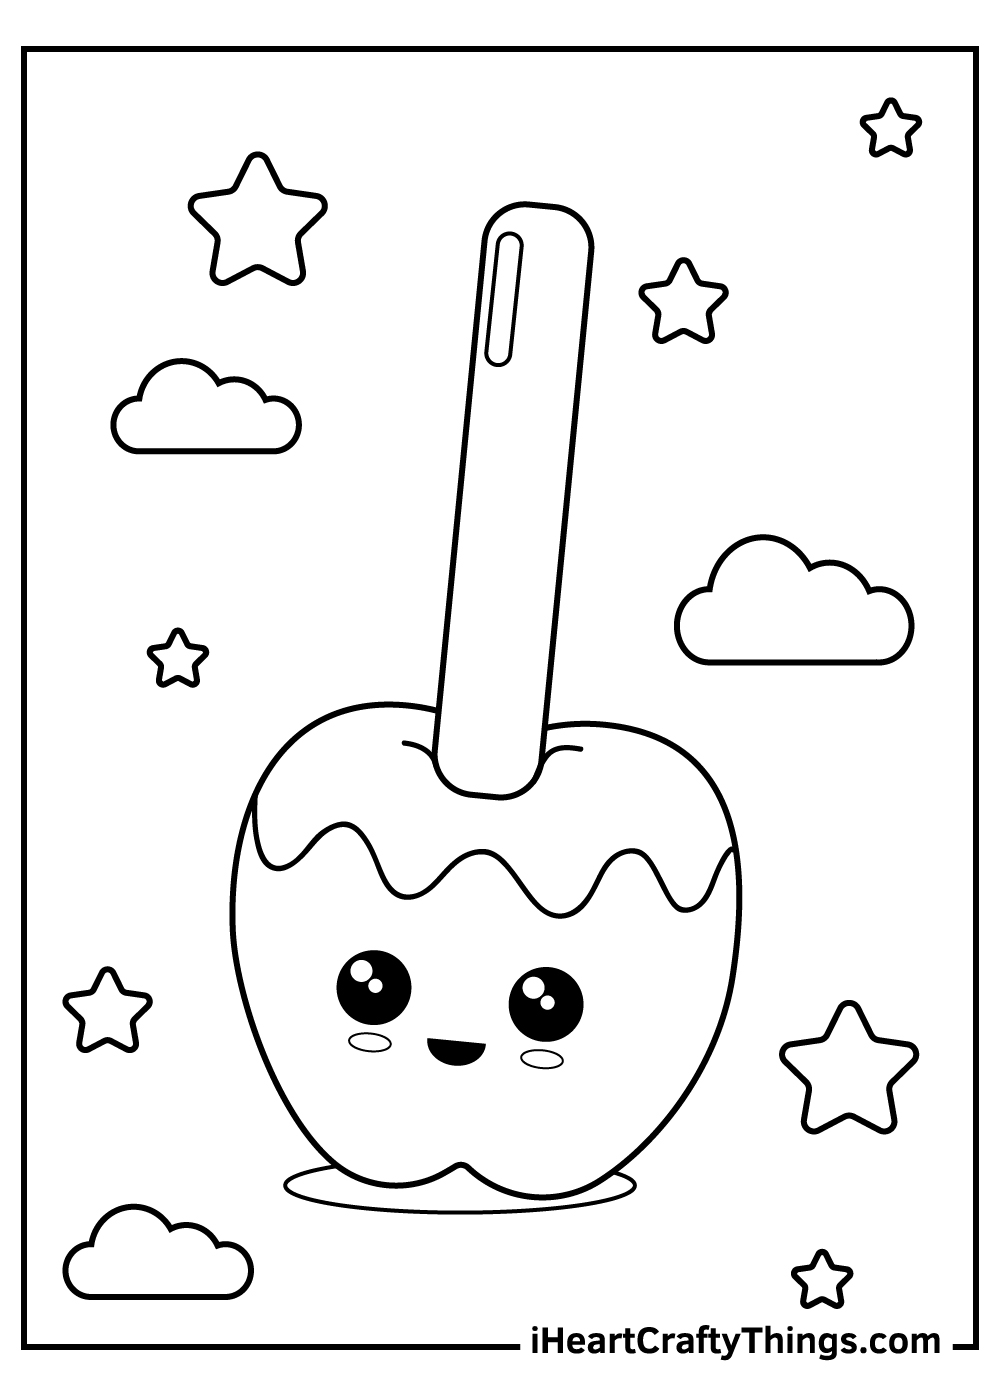 Apple Candy Coloring Pages printable